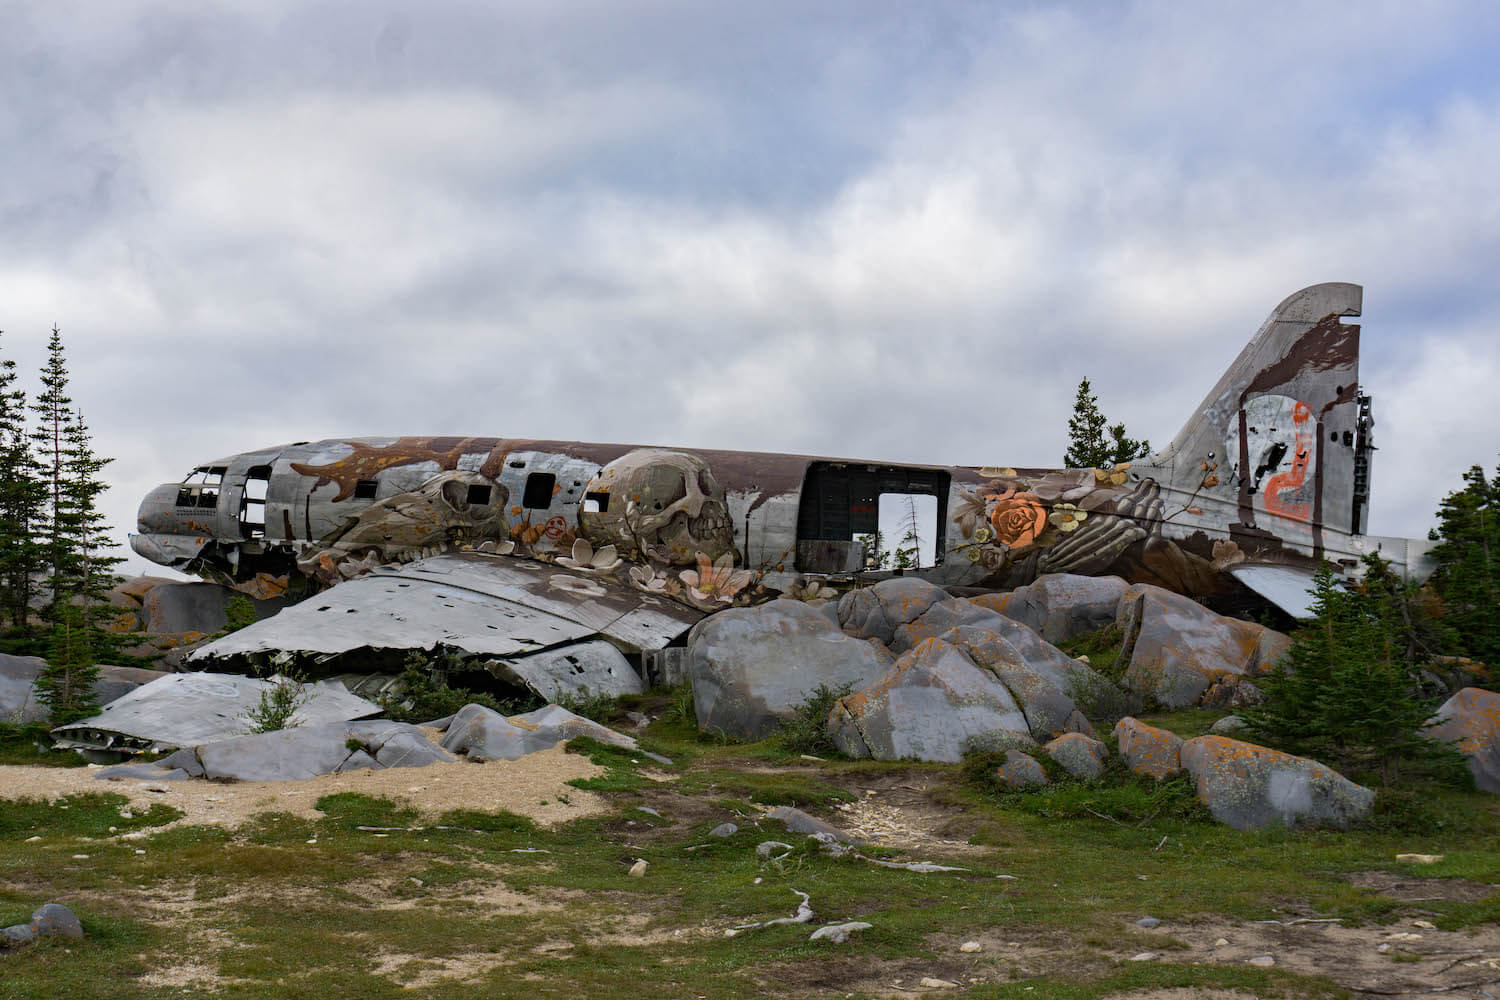 Miss-Piggy-plane-mural-painting-about-climate-change-Churchill-Manitoba (1 of 1)